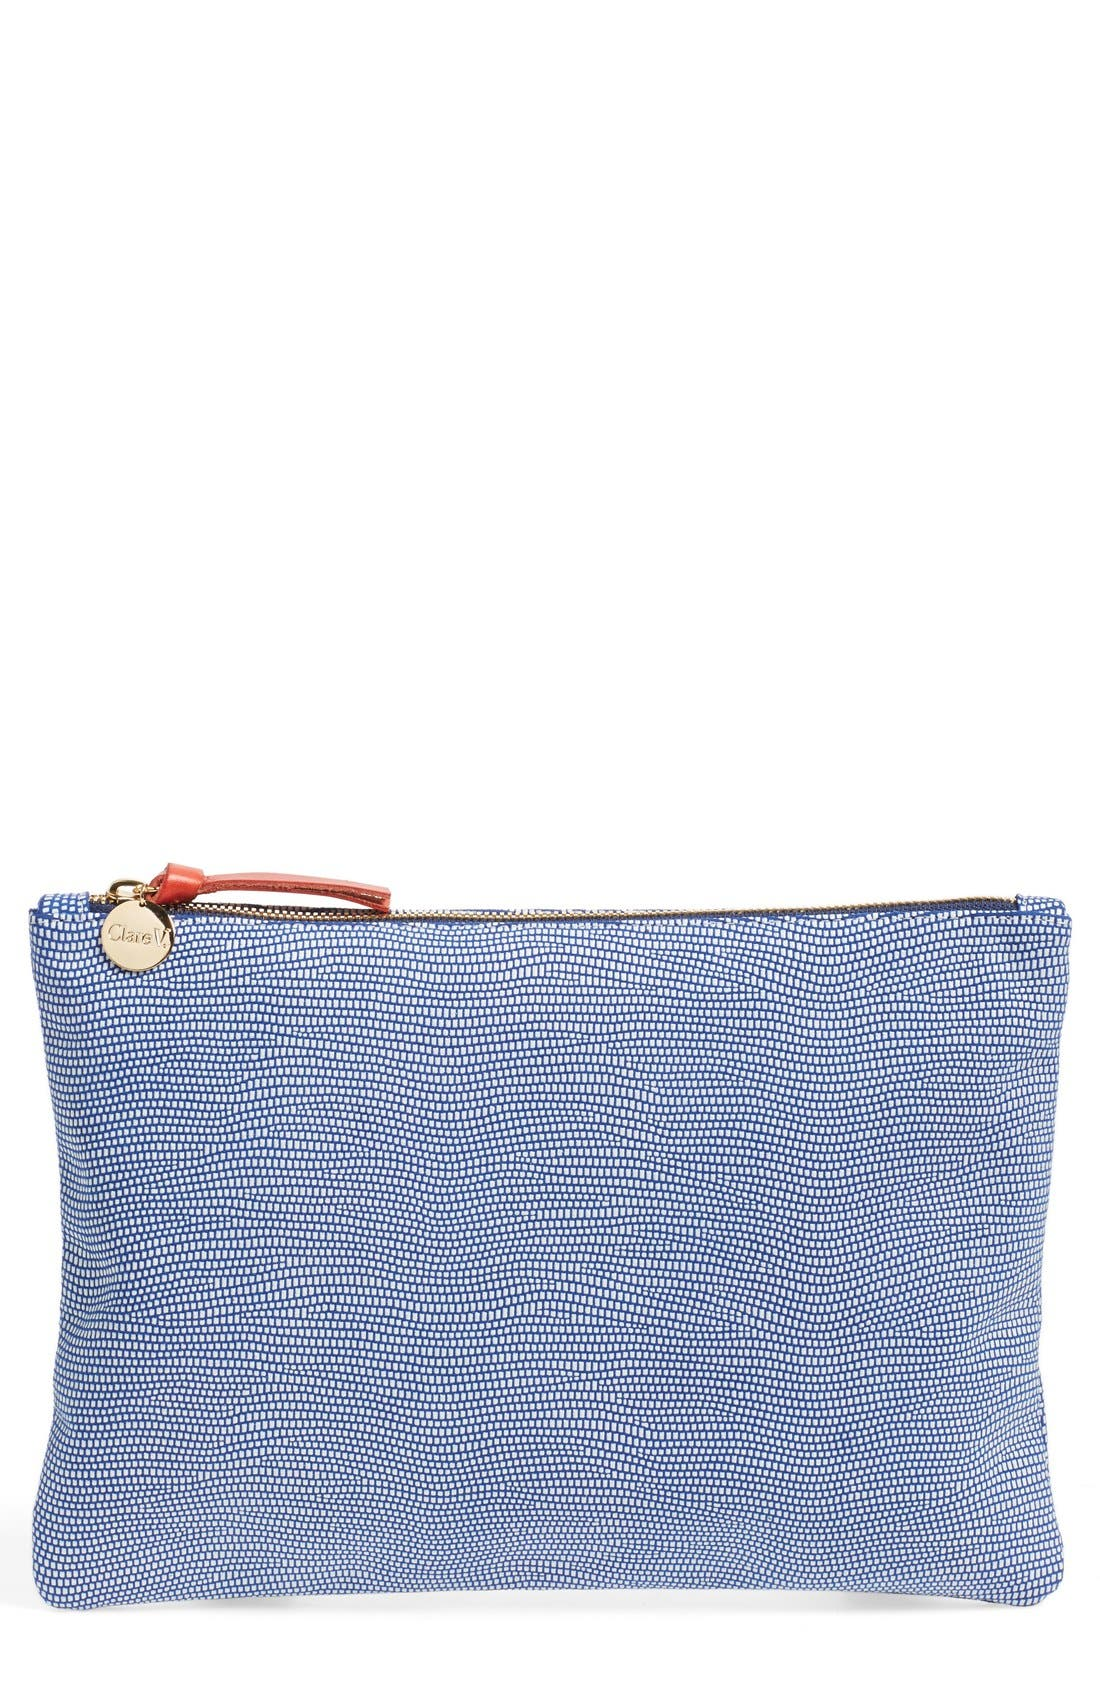 Main Image - Clare V. Lizard Embossed Leather Zip Clutch